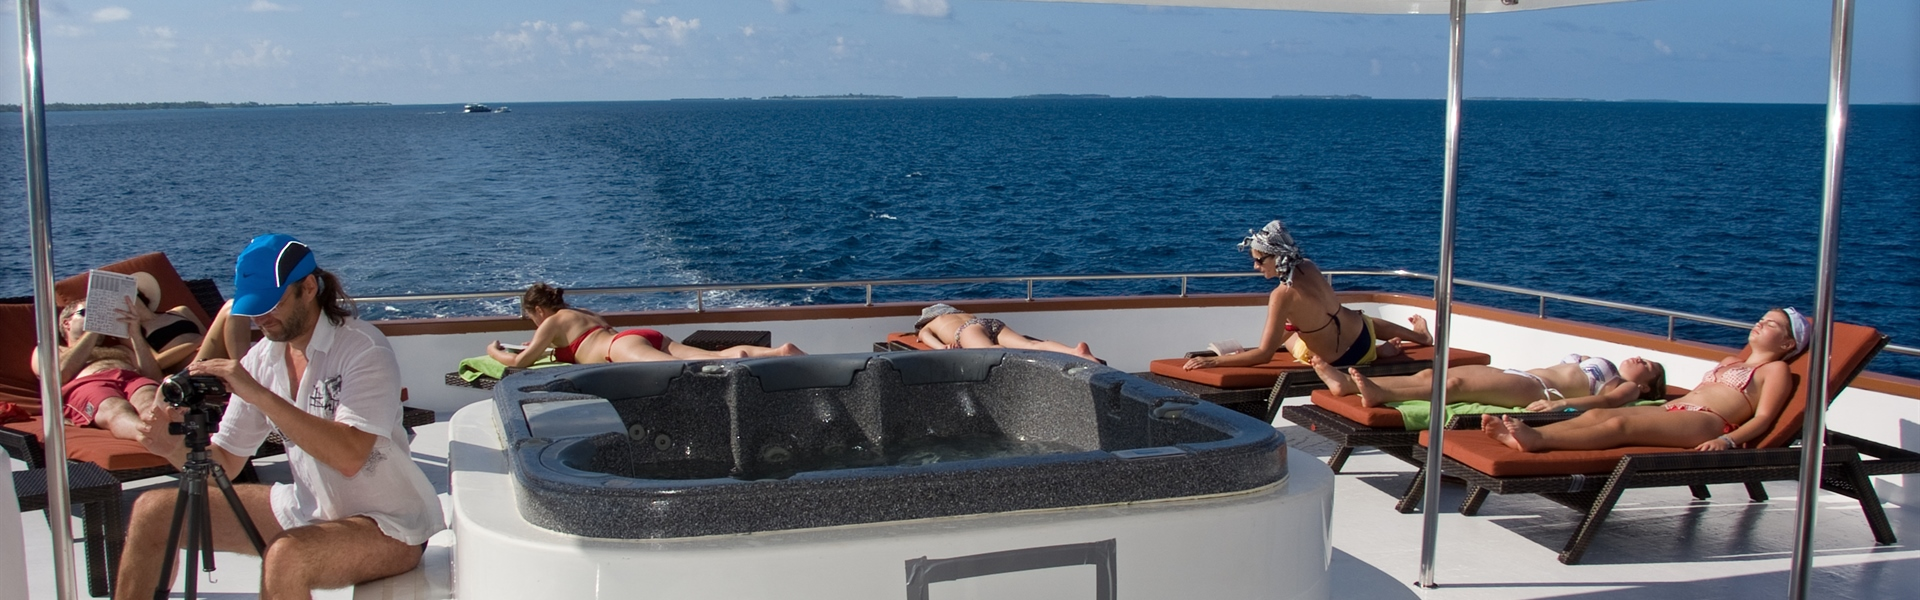 Sun deck loungers and hot tub